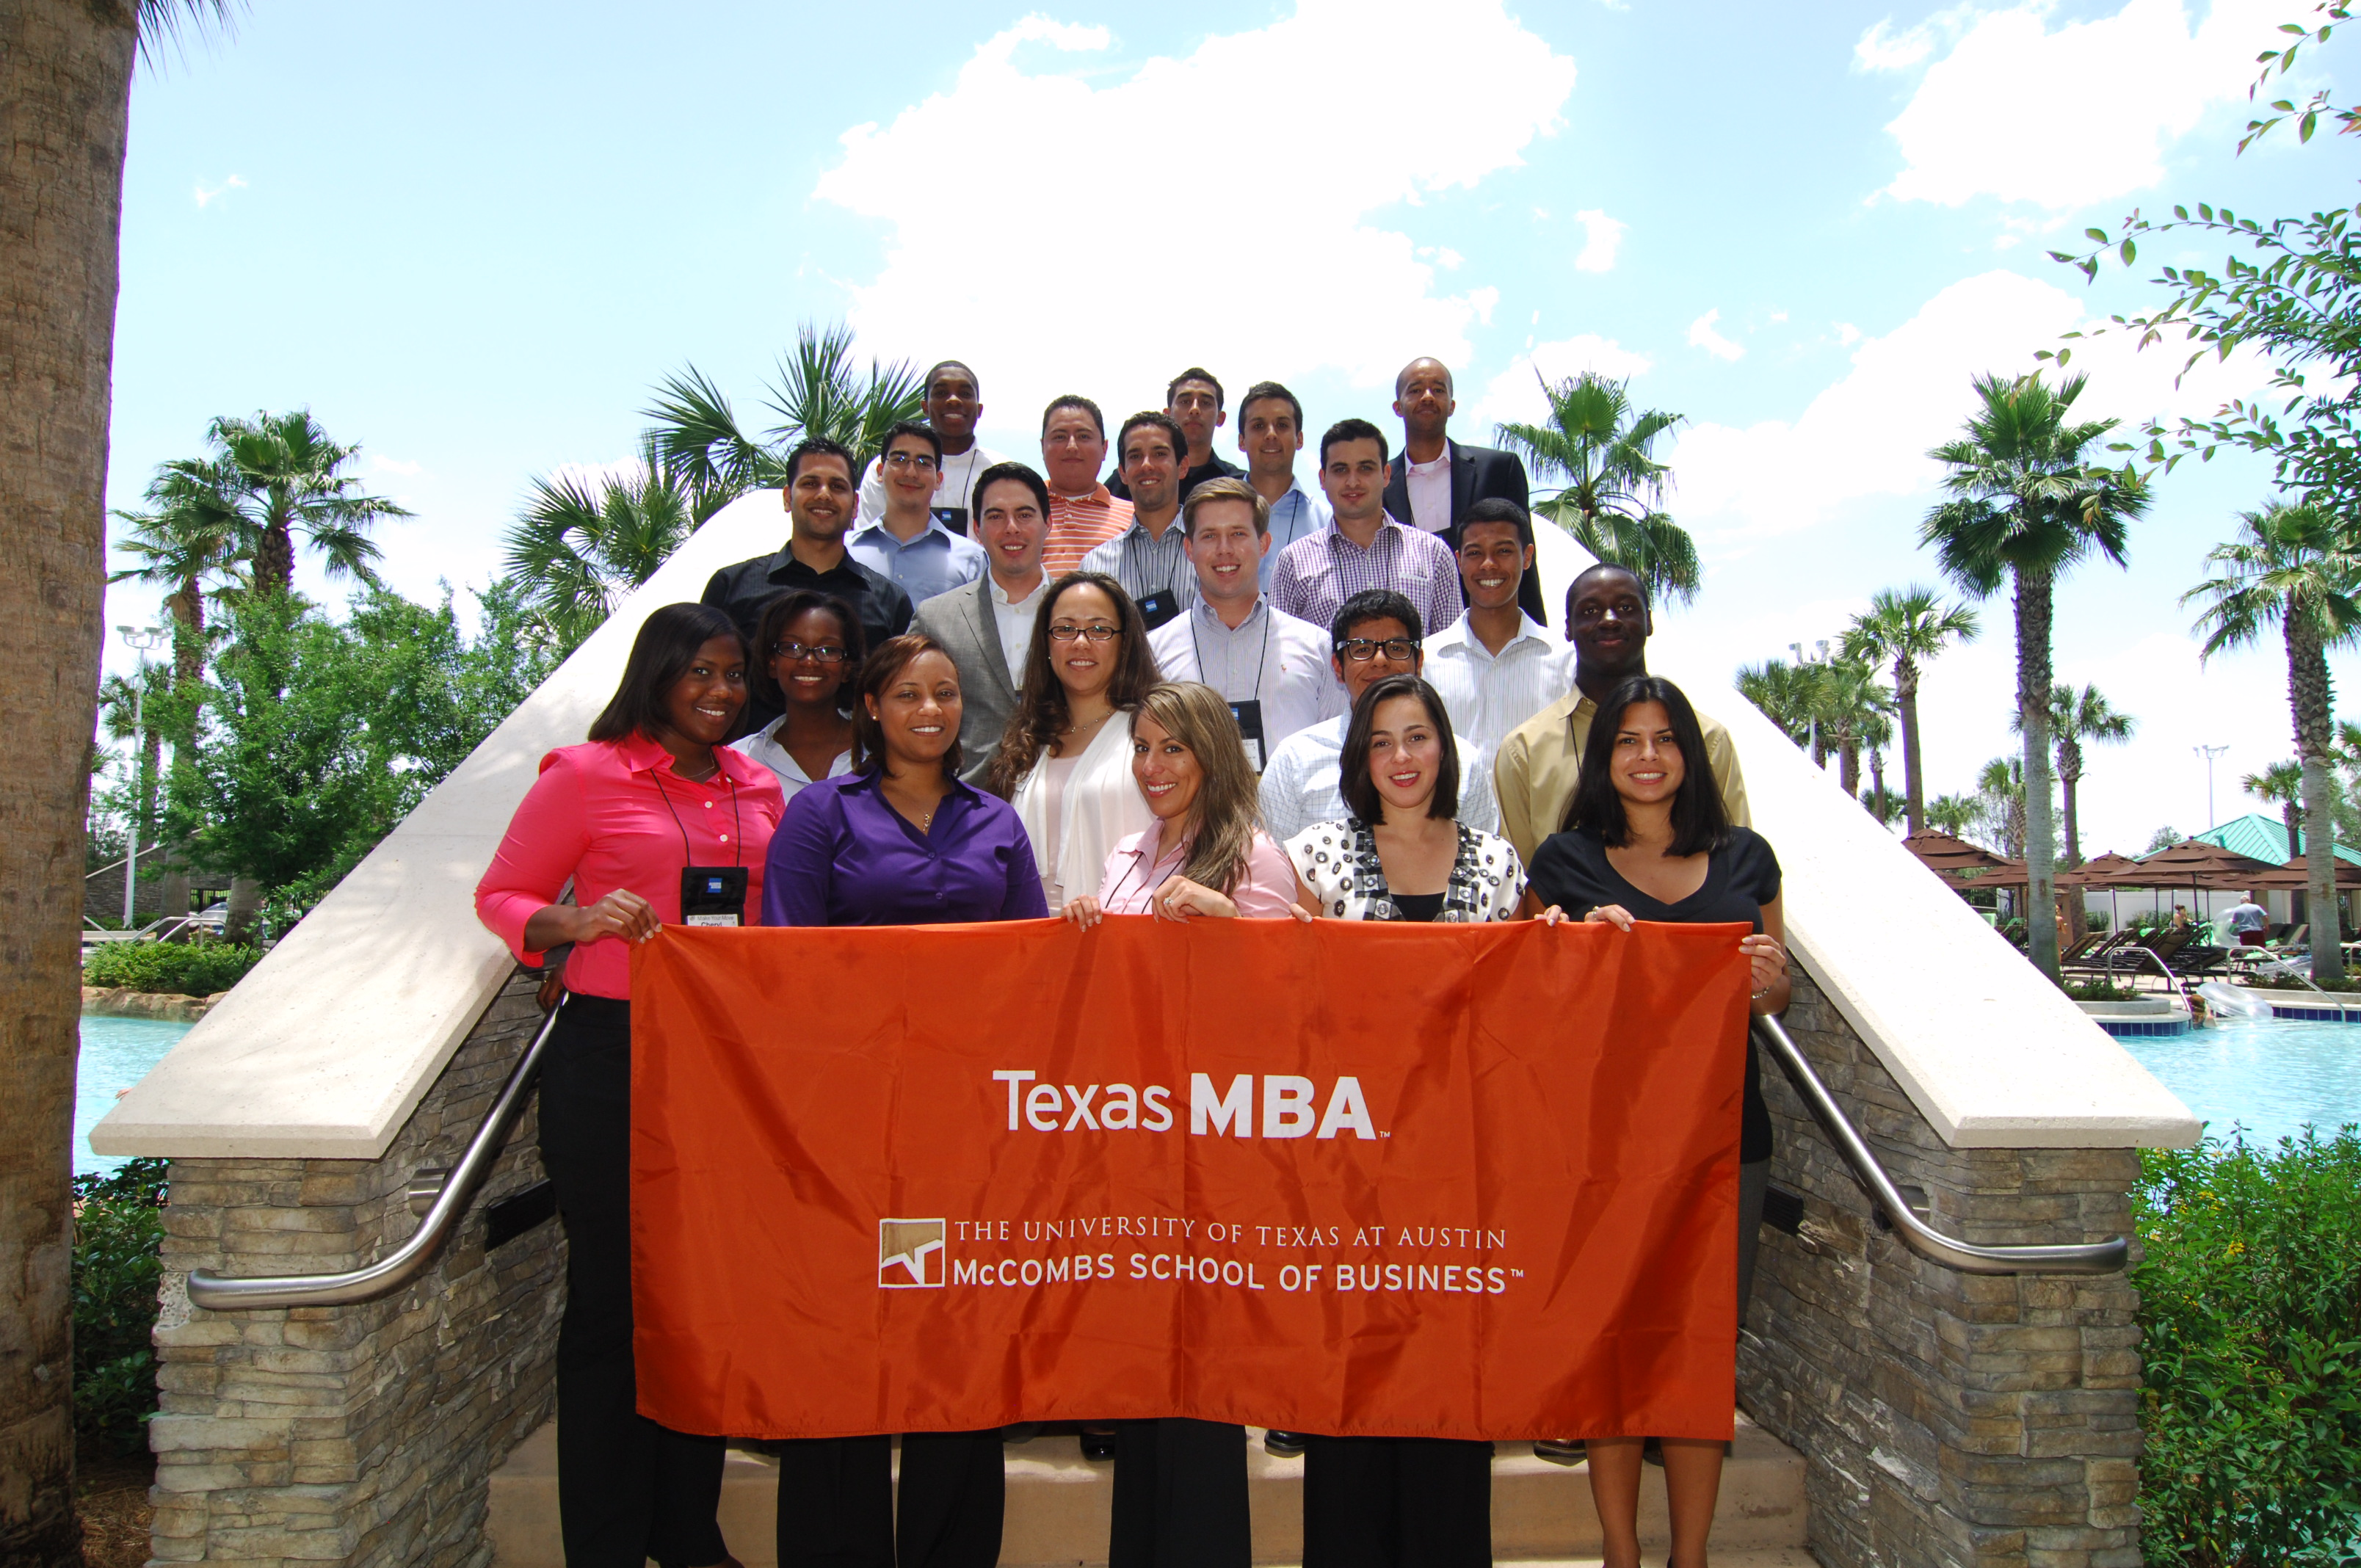 austin mba essay Each year, the mccombs school of business at the university of texas at austin tweaks the wording of its application essay questions just a bit, though the core of what the program hopes to learn from its applicants seems to stay largely the same.